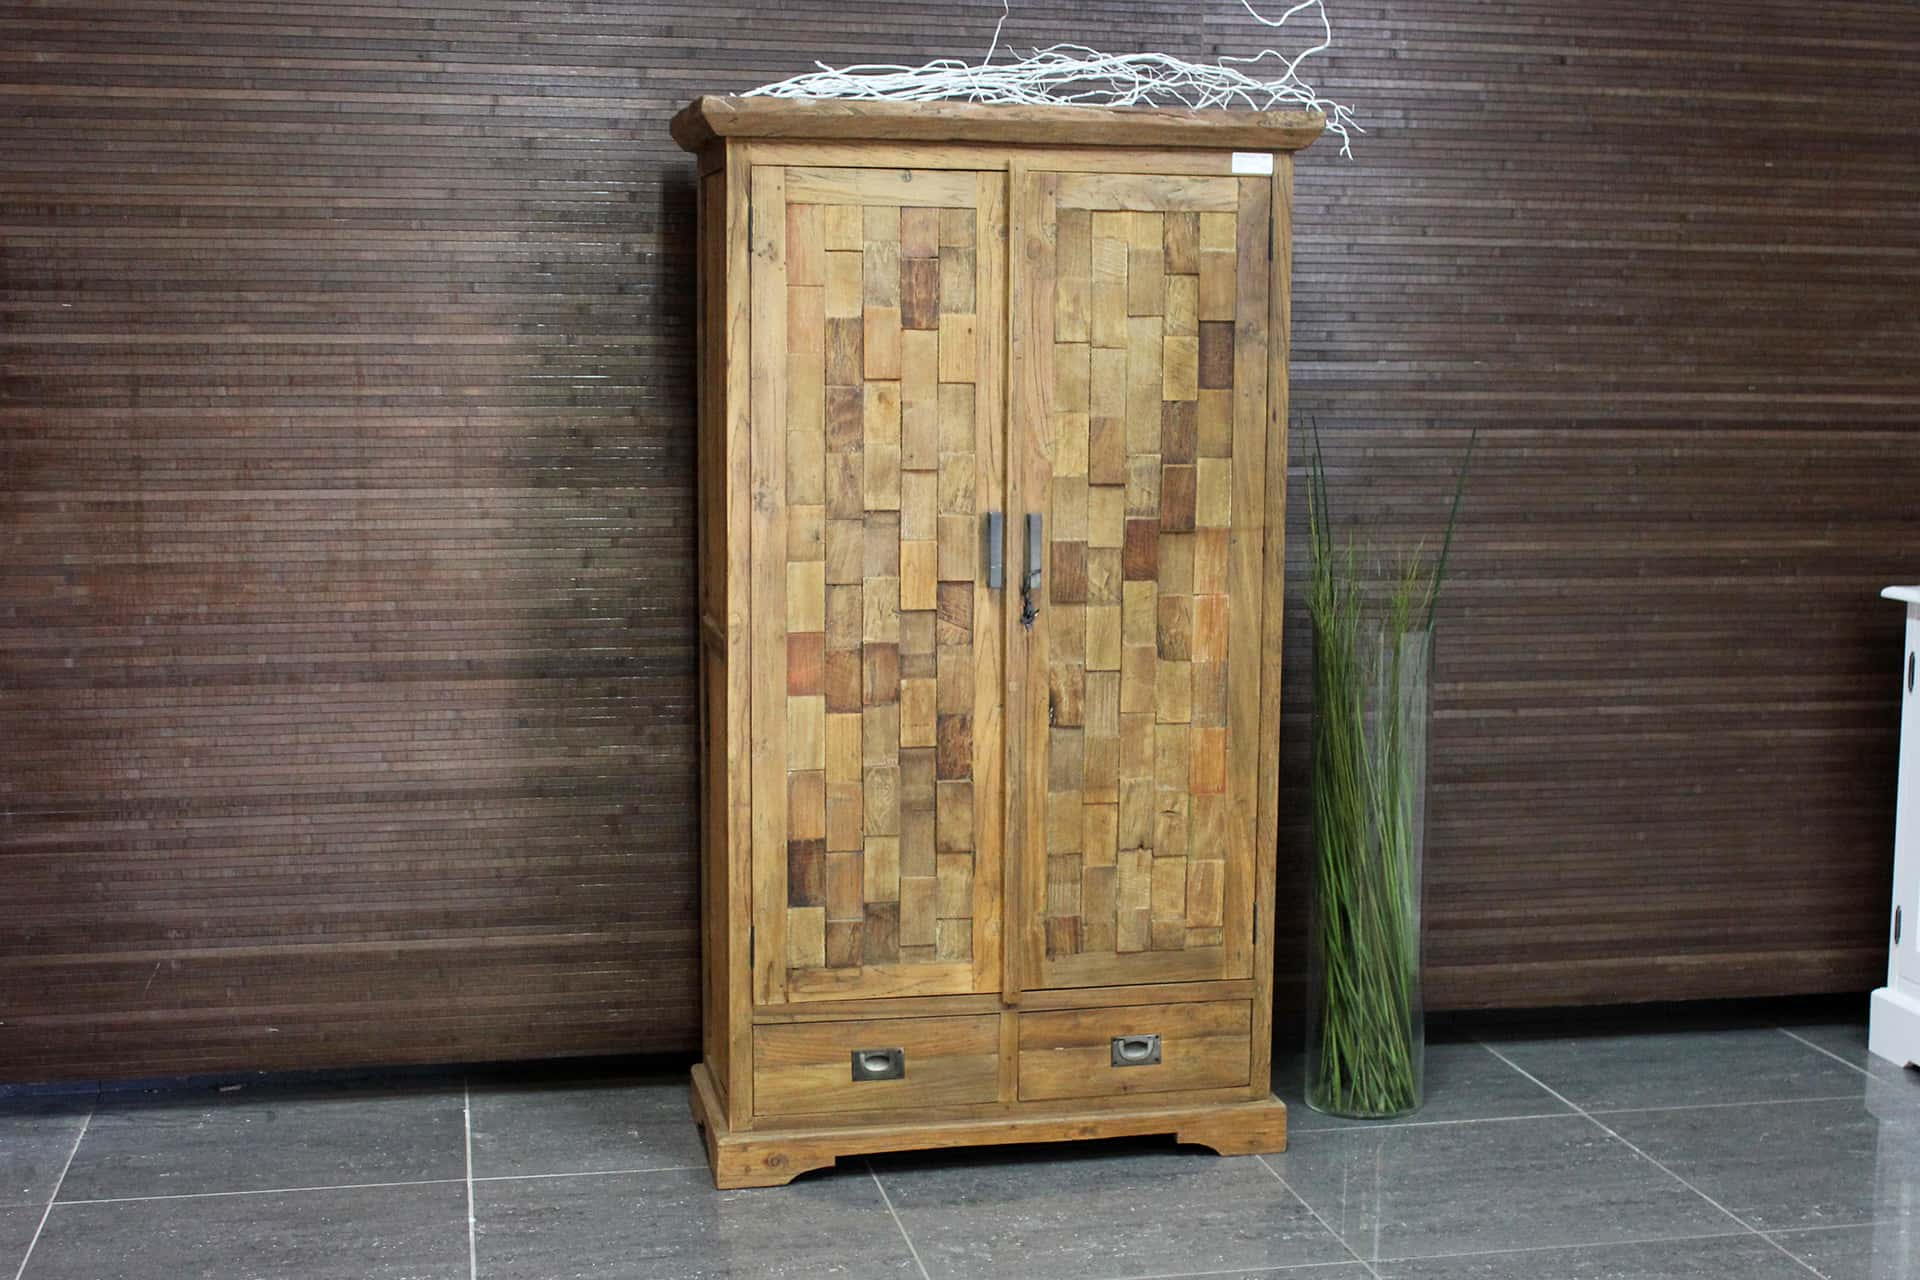 Cuci Kubus 80L Old | exclusive teak cabinet from Indonesia. Unique teak wall cabinet in Indonesian temple style, unique cube motif on revolving door - TEAK2.